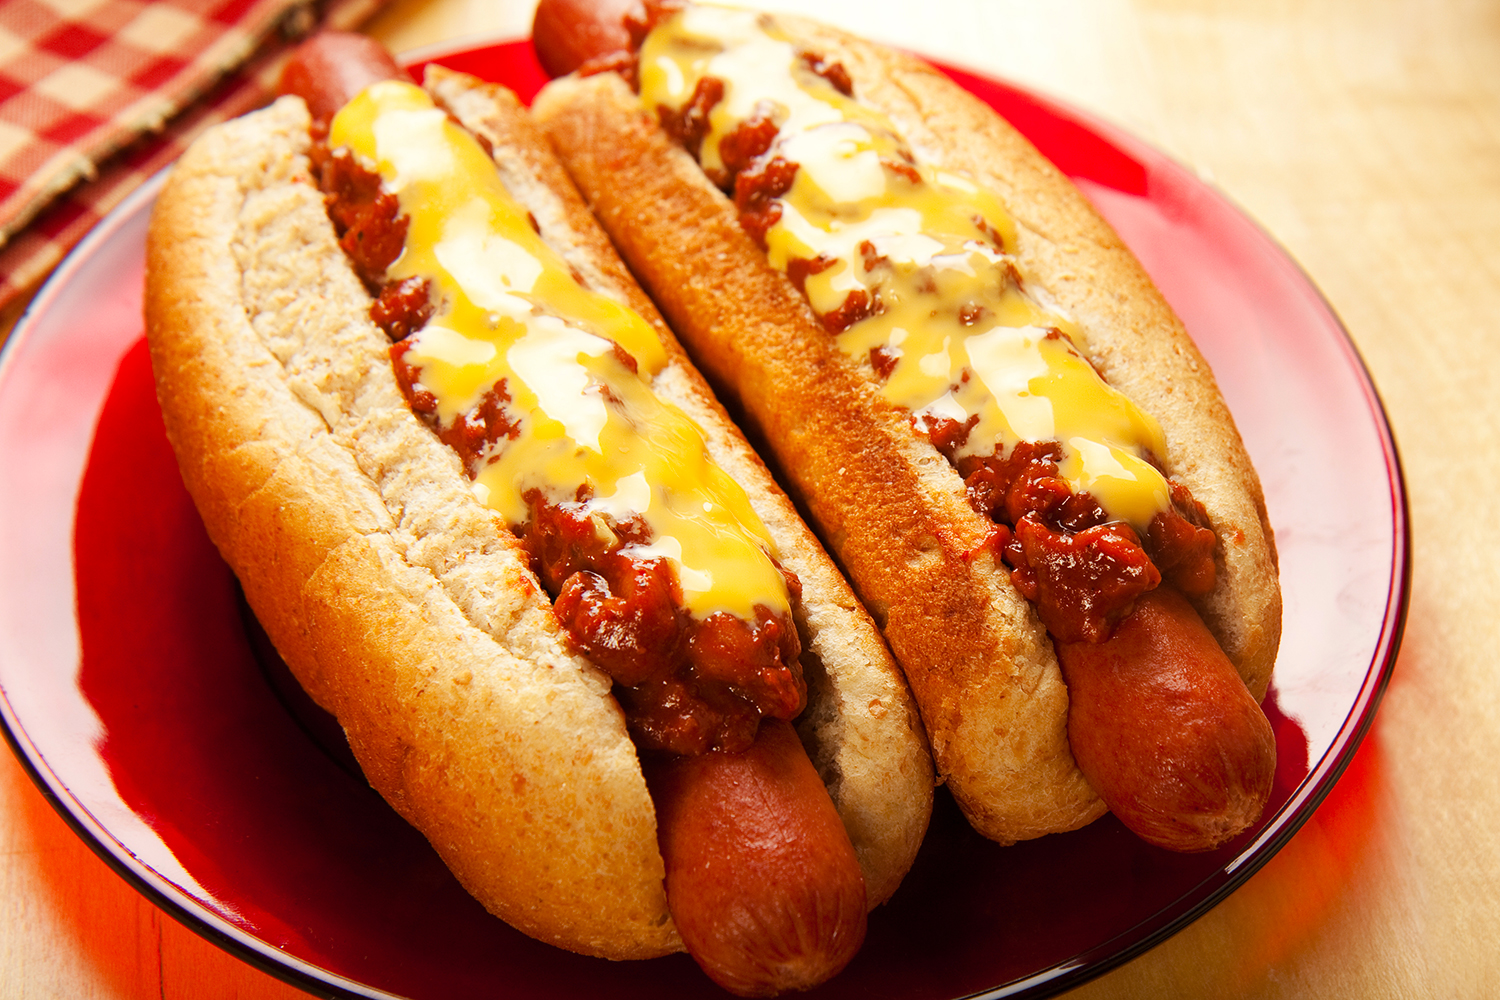 recette de chili dogs selon bob le chef. Black Bedroom Furniture Sets. Home Design Ideas